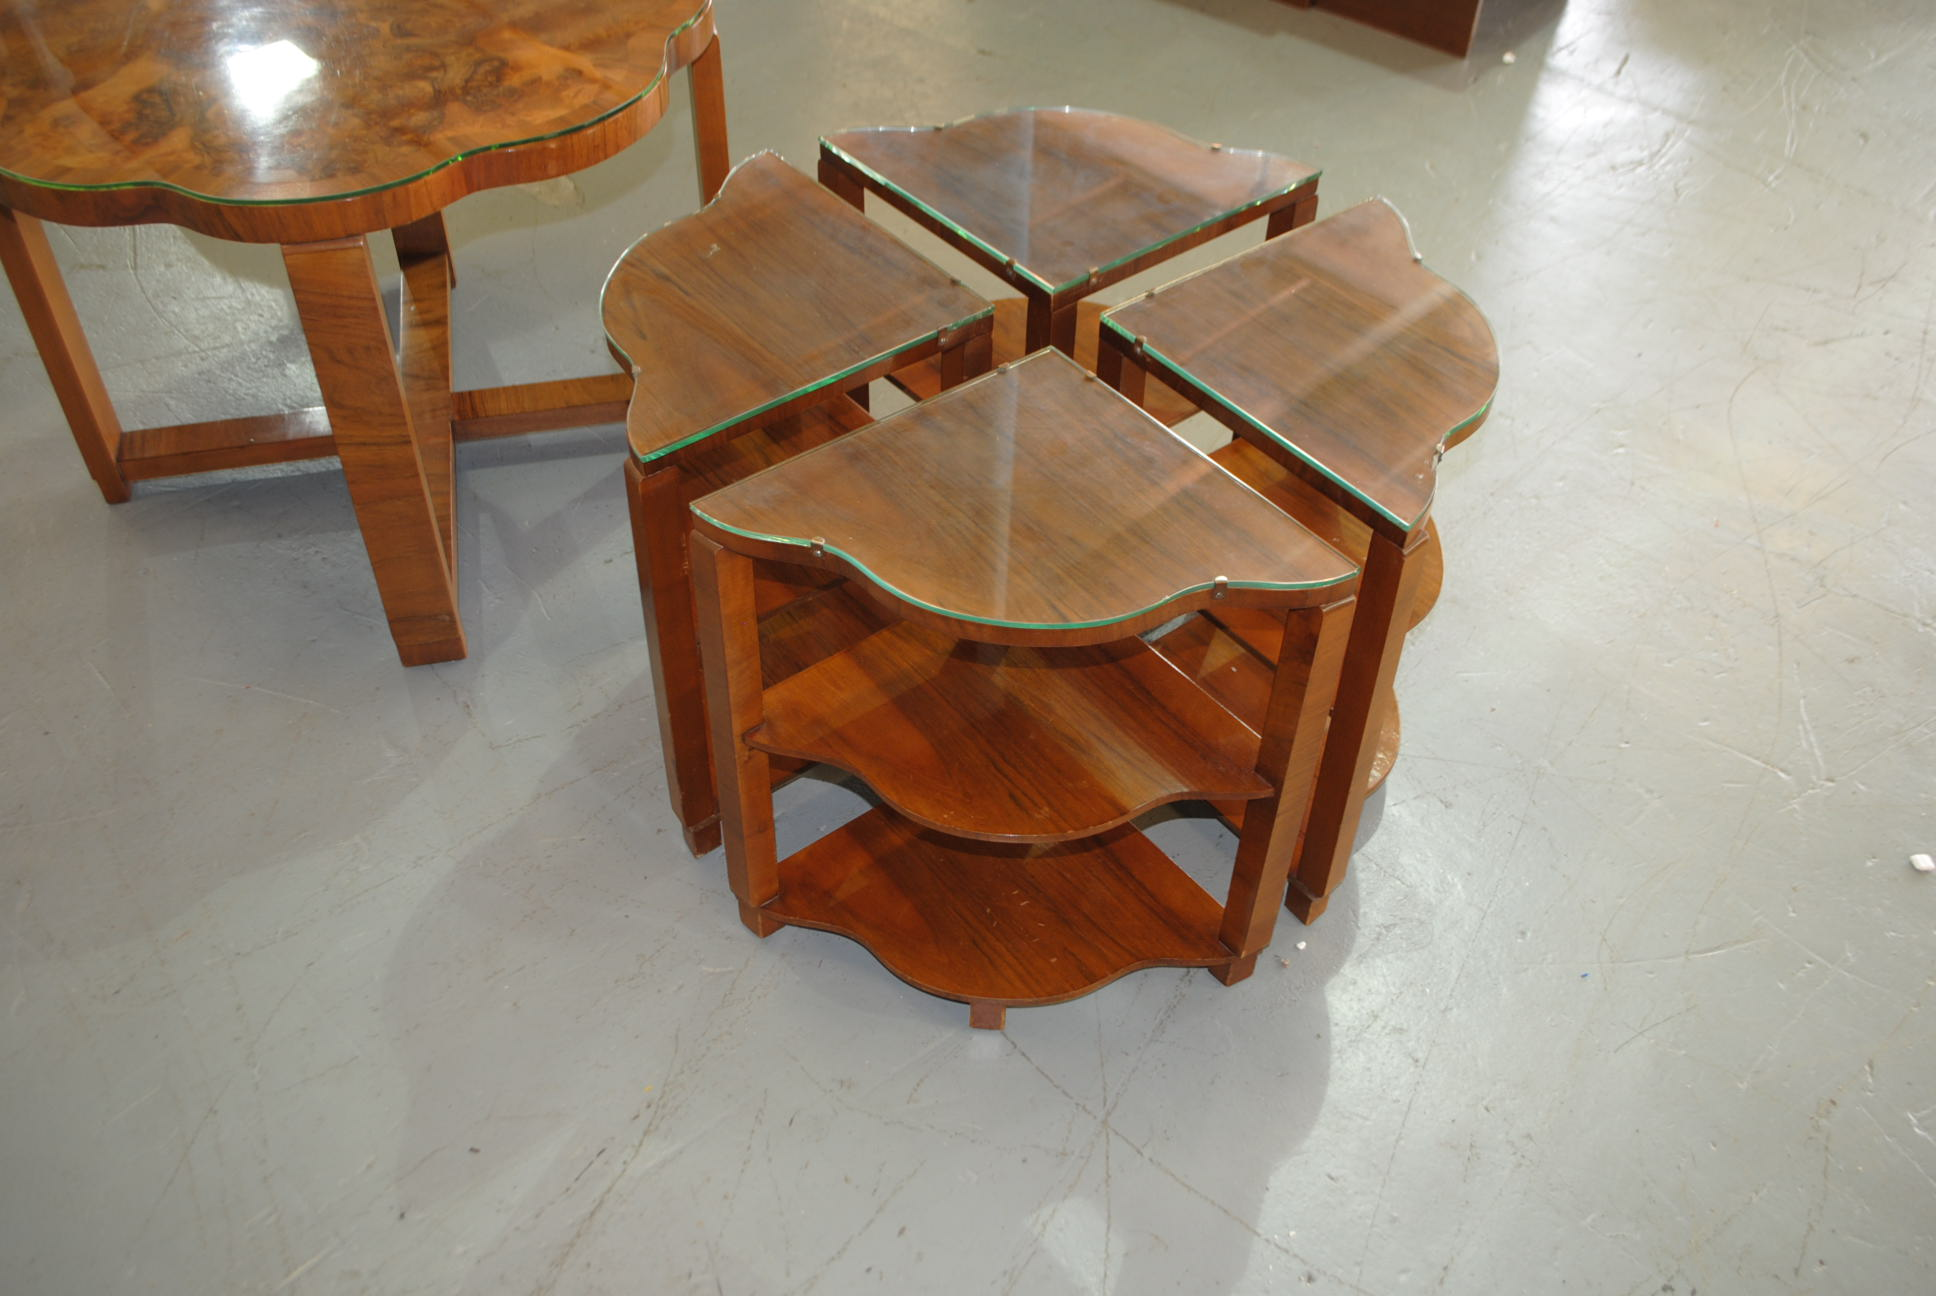 Art deco epstein nest of tables cloud 9 art deco furniture sales - Epstein art deco furniture ...